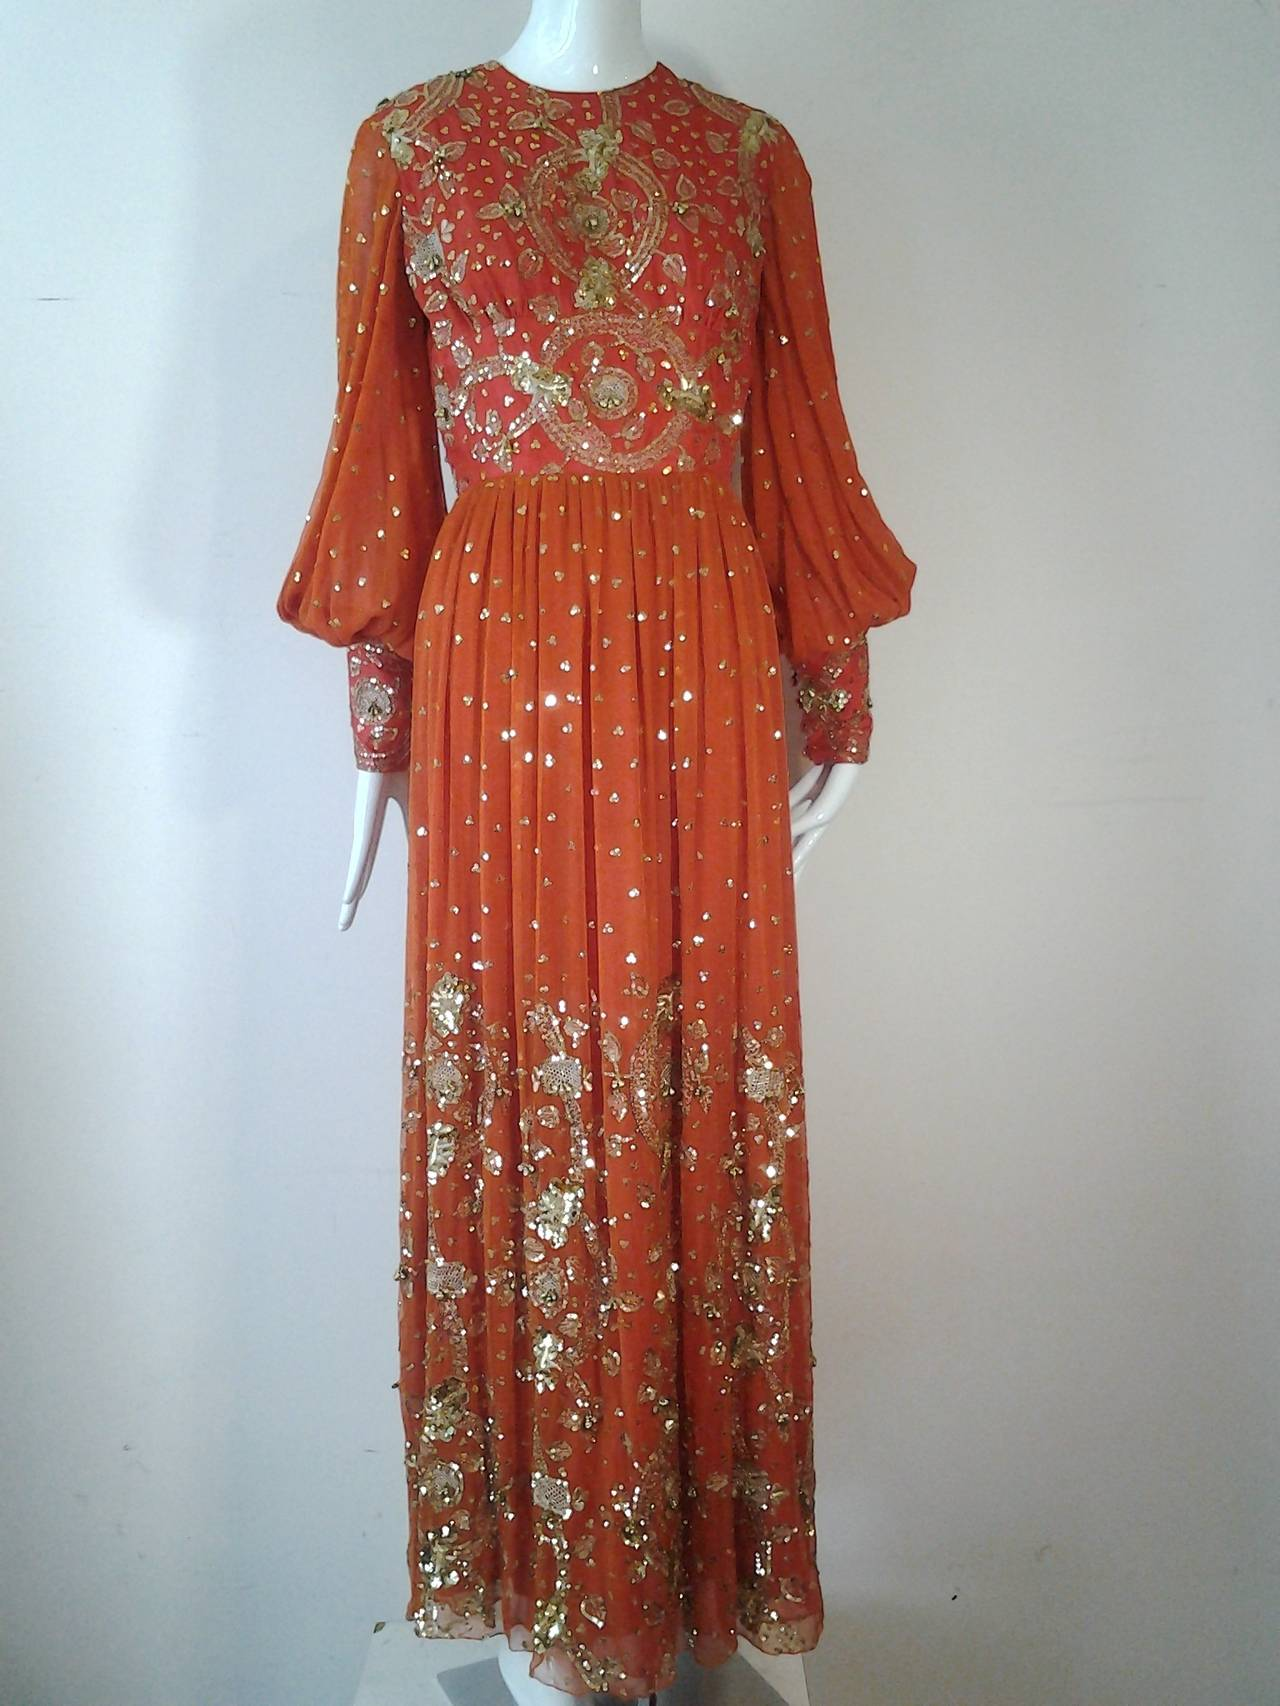 1960s SAZ Ceremonial Sari-Inspired Gown in Silk and Gold Embellishment 2